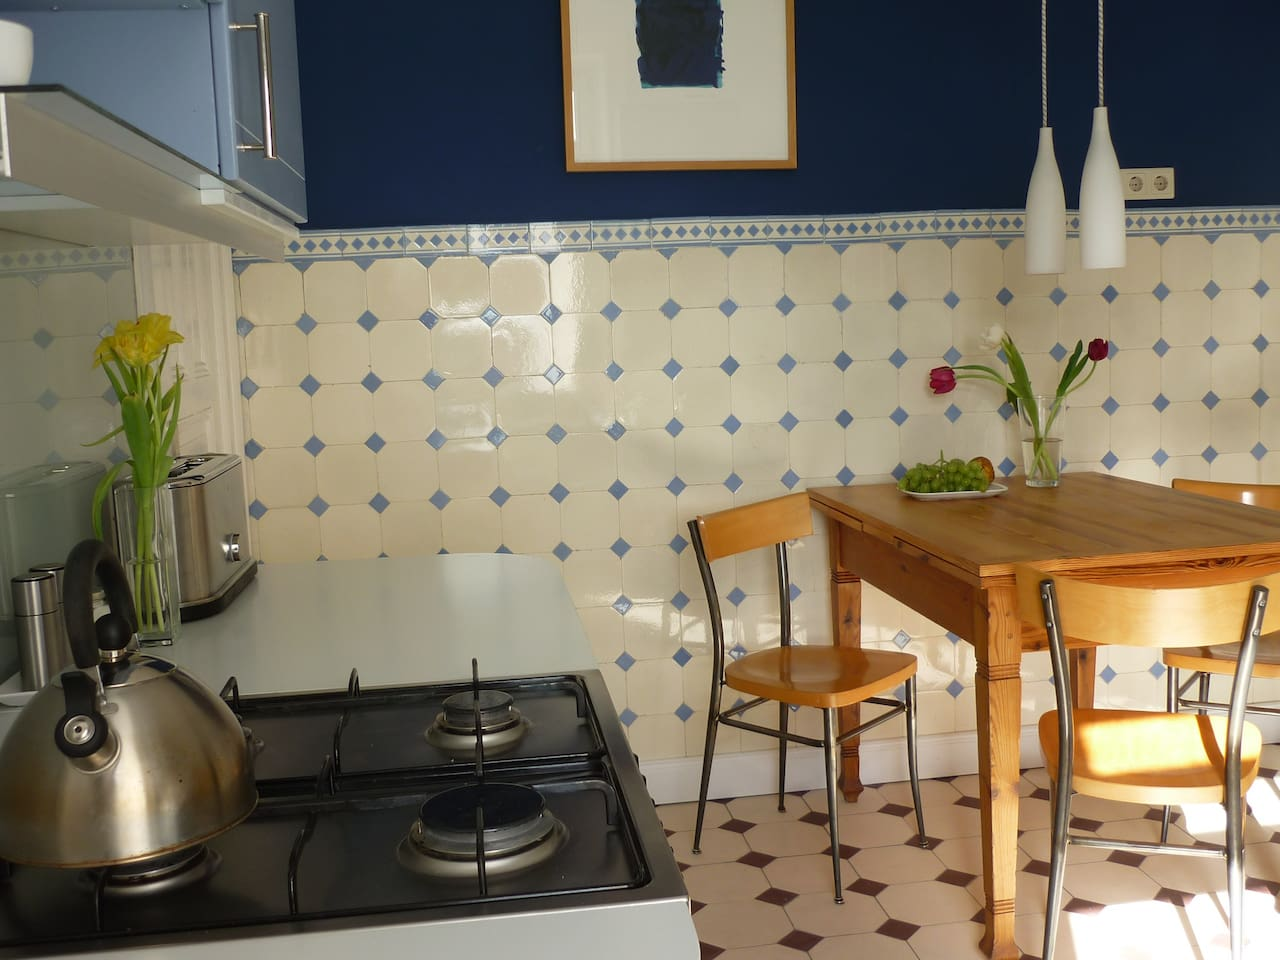 Küche/kitchen with dining table for cosy evening meals